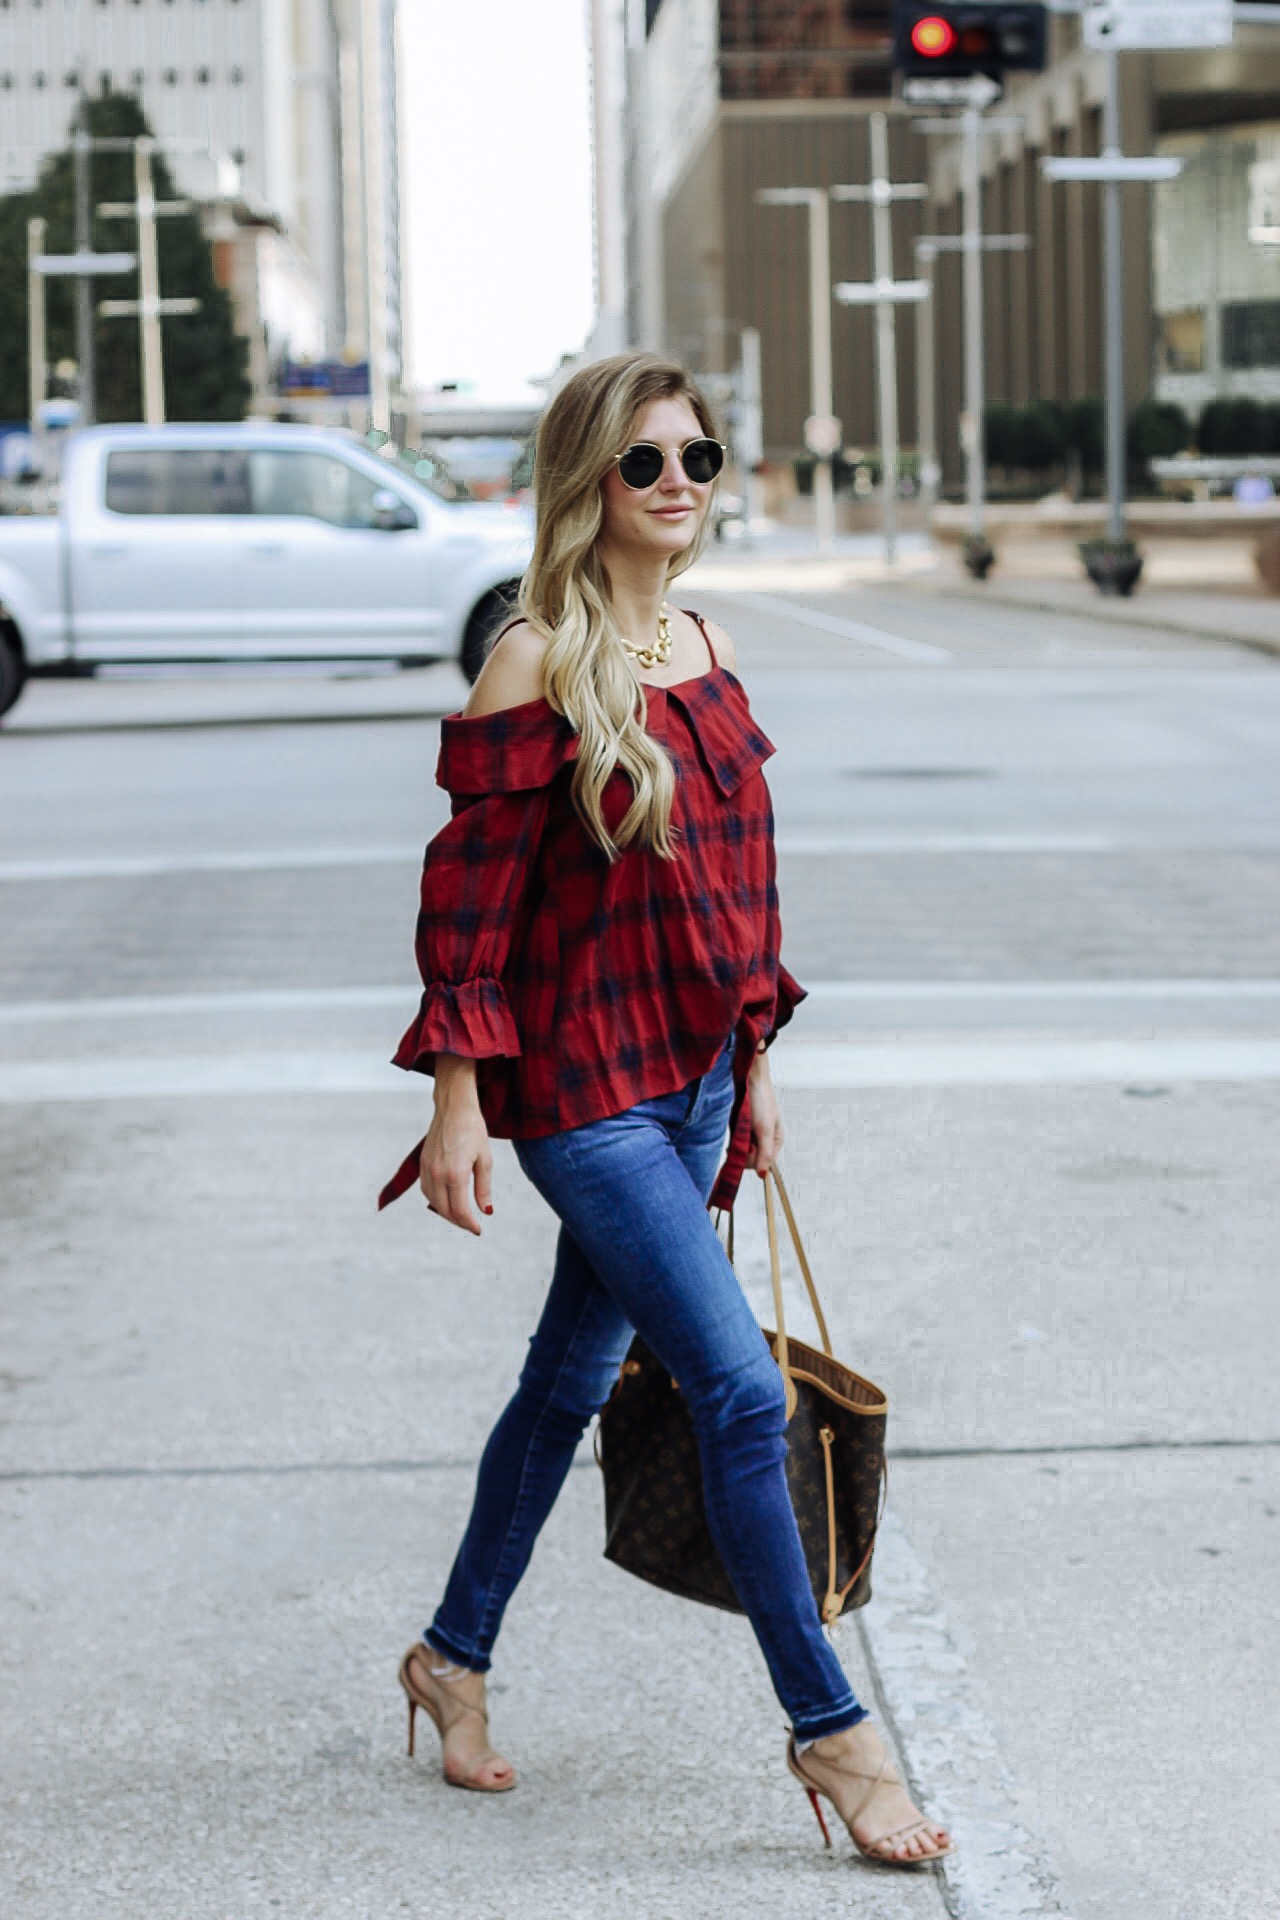 Street style wearing burgundy fall basics. A staple piece for any closet.